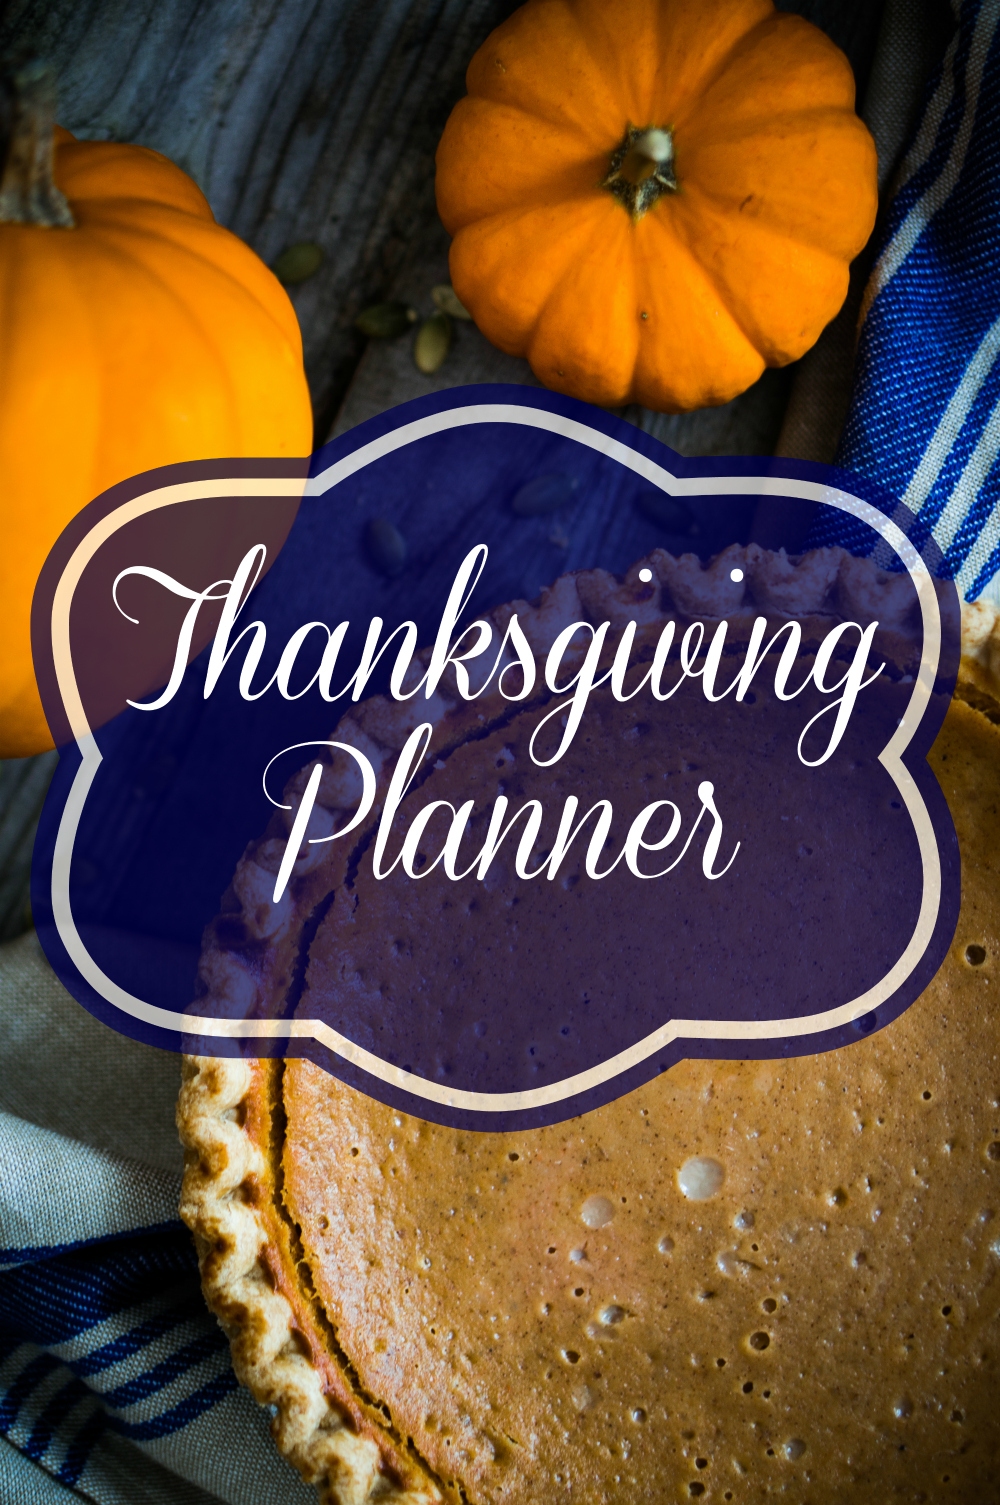 Stay organized and stress-free this Thanksgiving with this affordable Thanksgiving Planner.